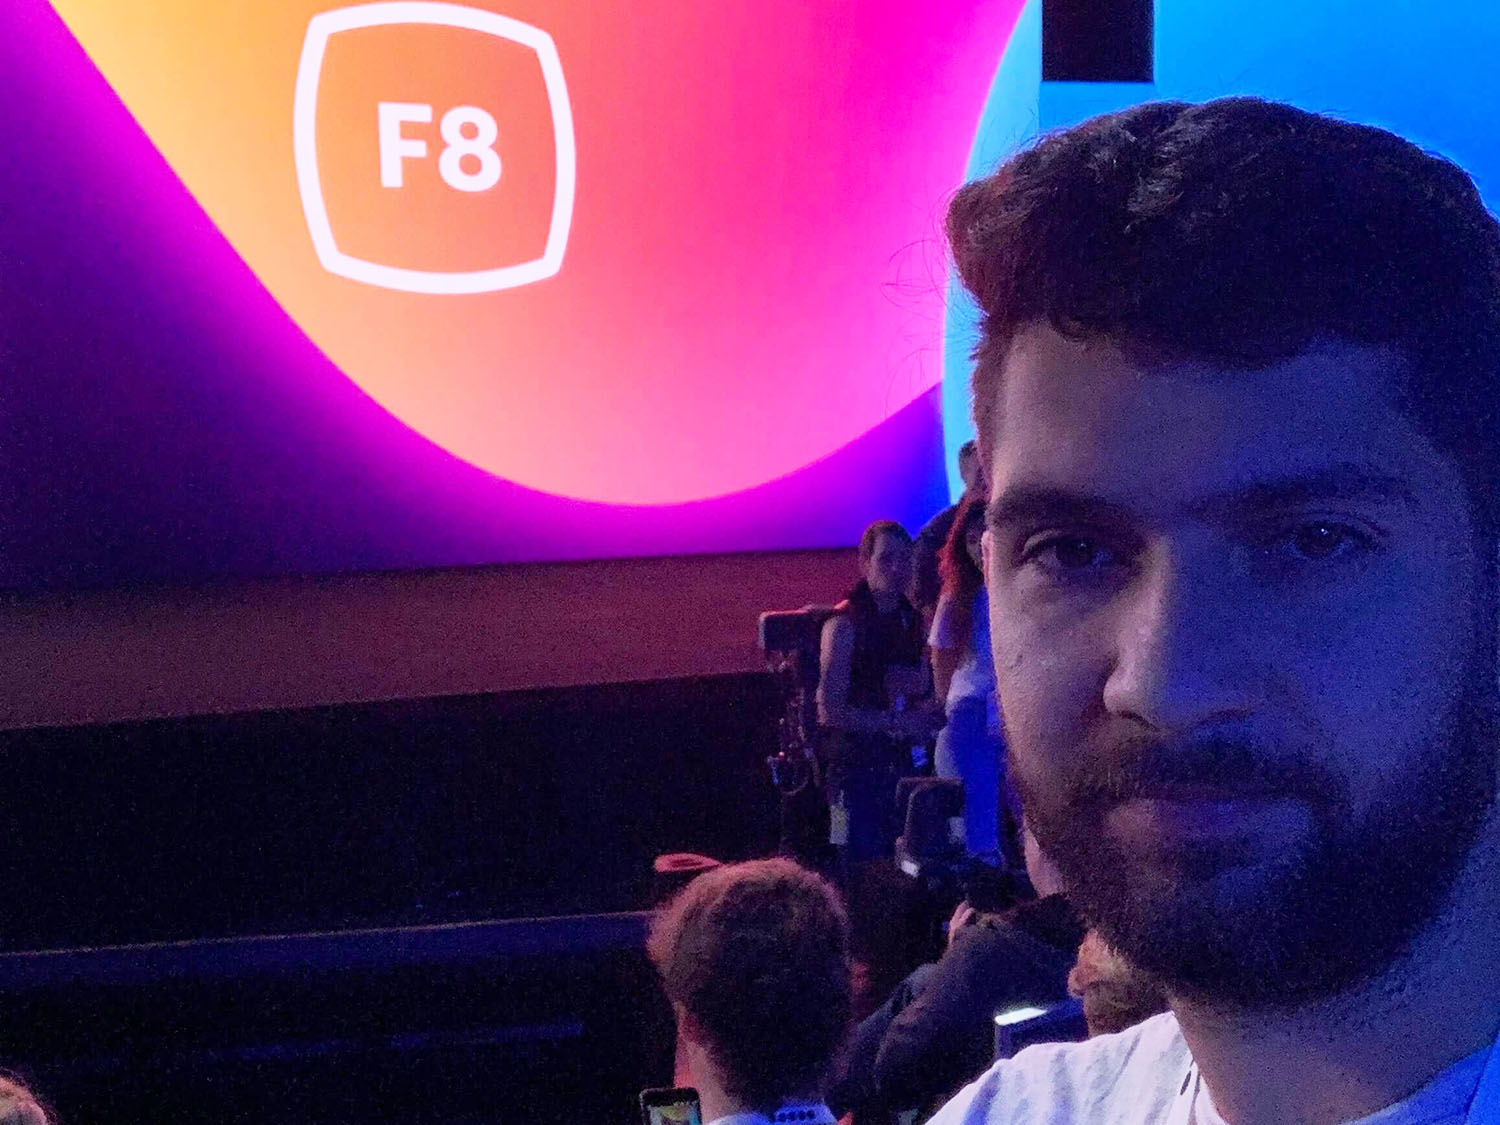 """We're working on it"": Marketforce's Chris Andrawes at F8 Facebook Conference – Day 2"